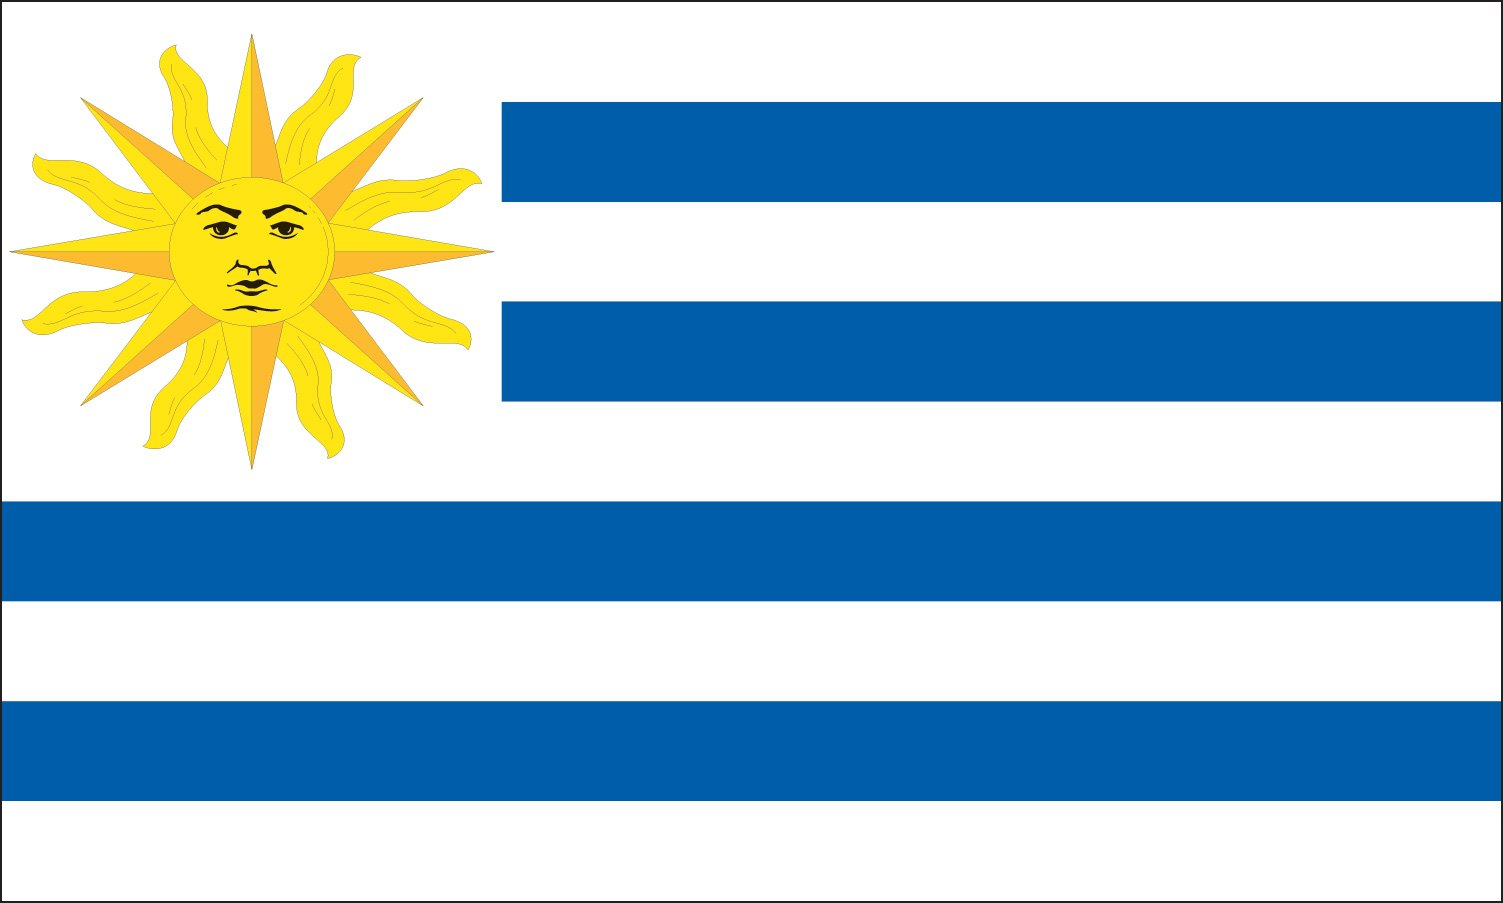 Valley Forge Flag 4-Foot by 6-Foot Nylon Uruguay Flag by Valley Forge